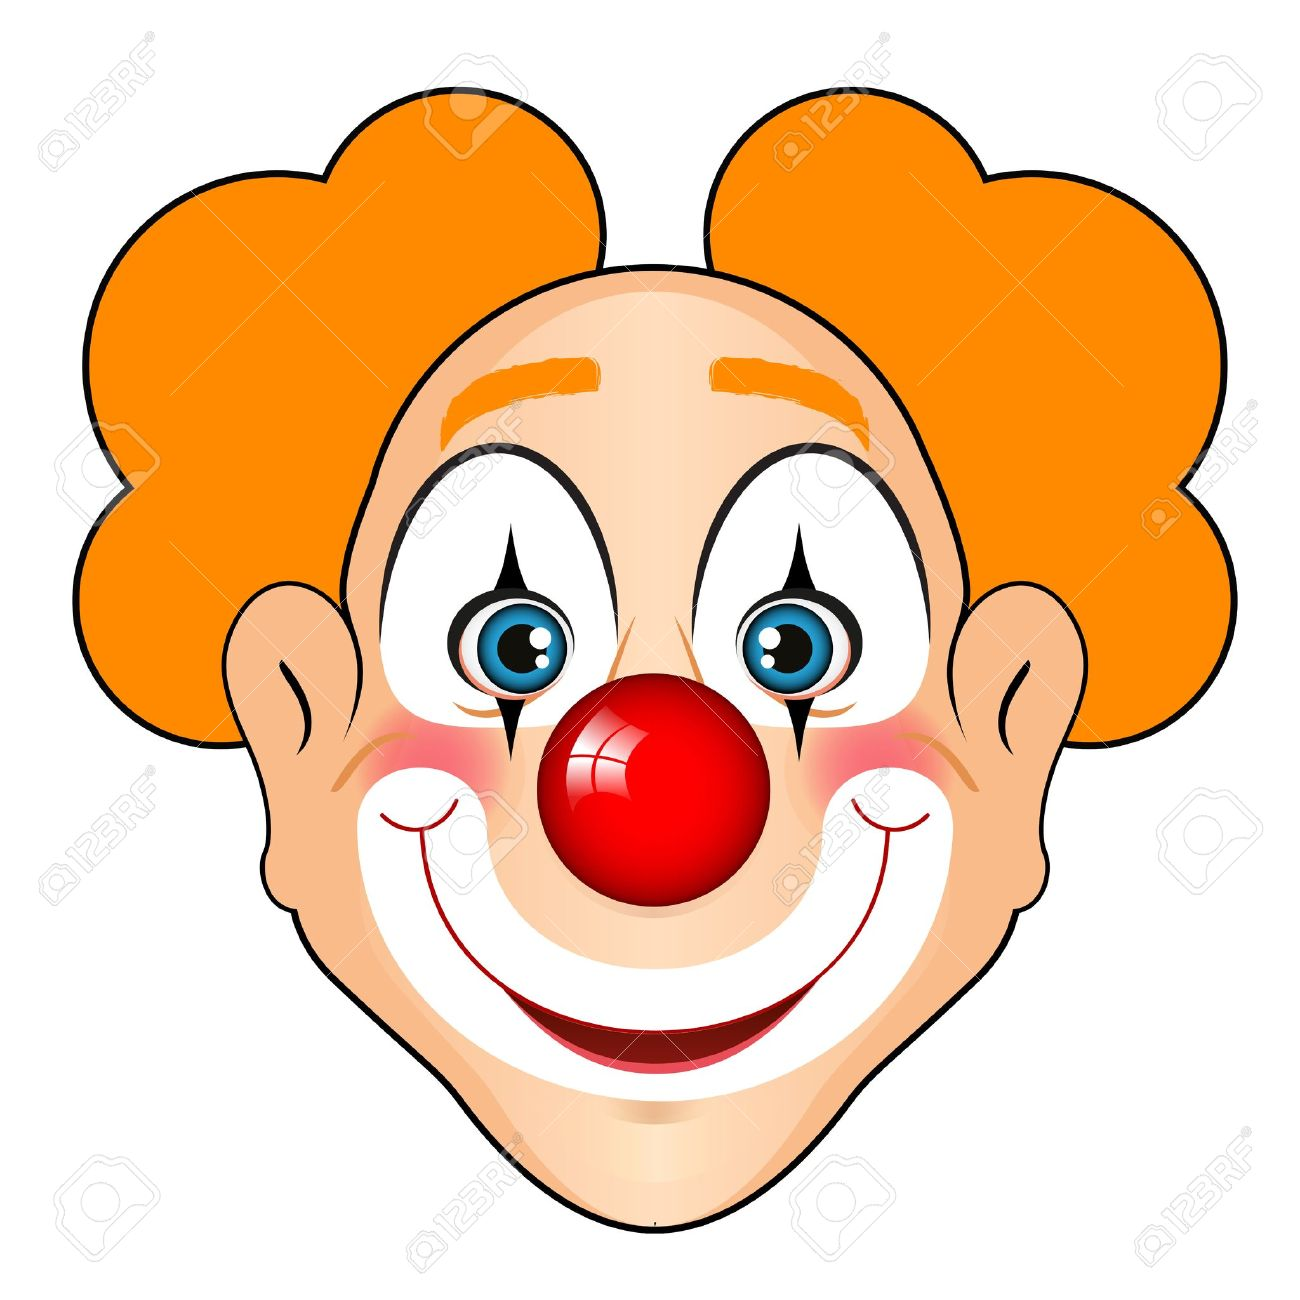 clown face: Vector illustration of smiling clown - Circus Joker Face PNG